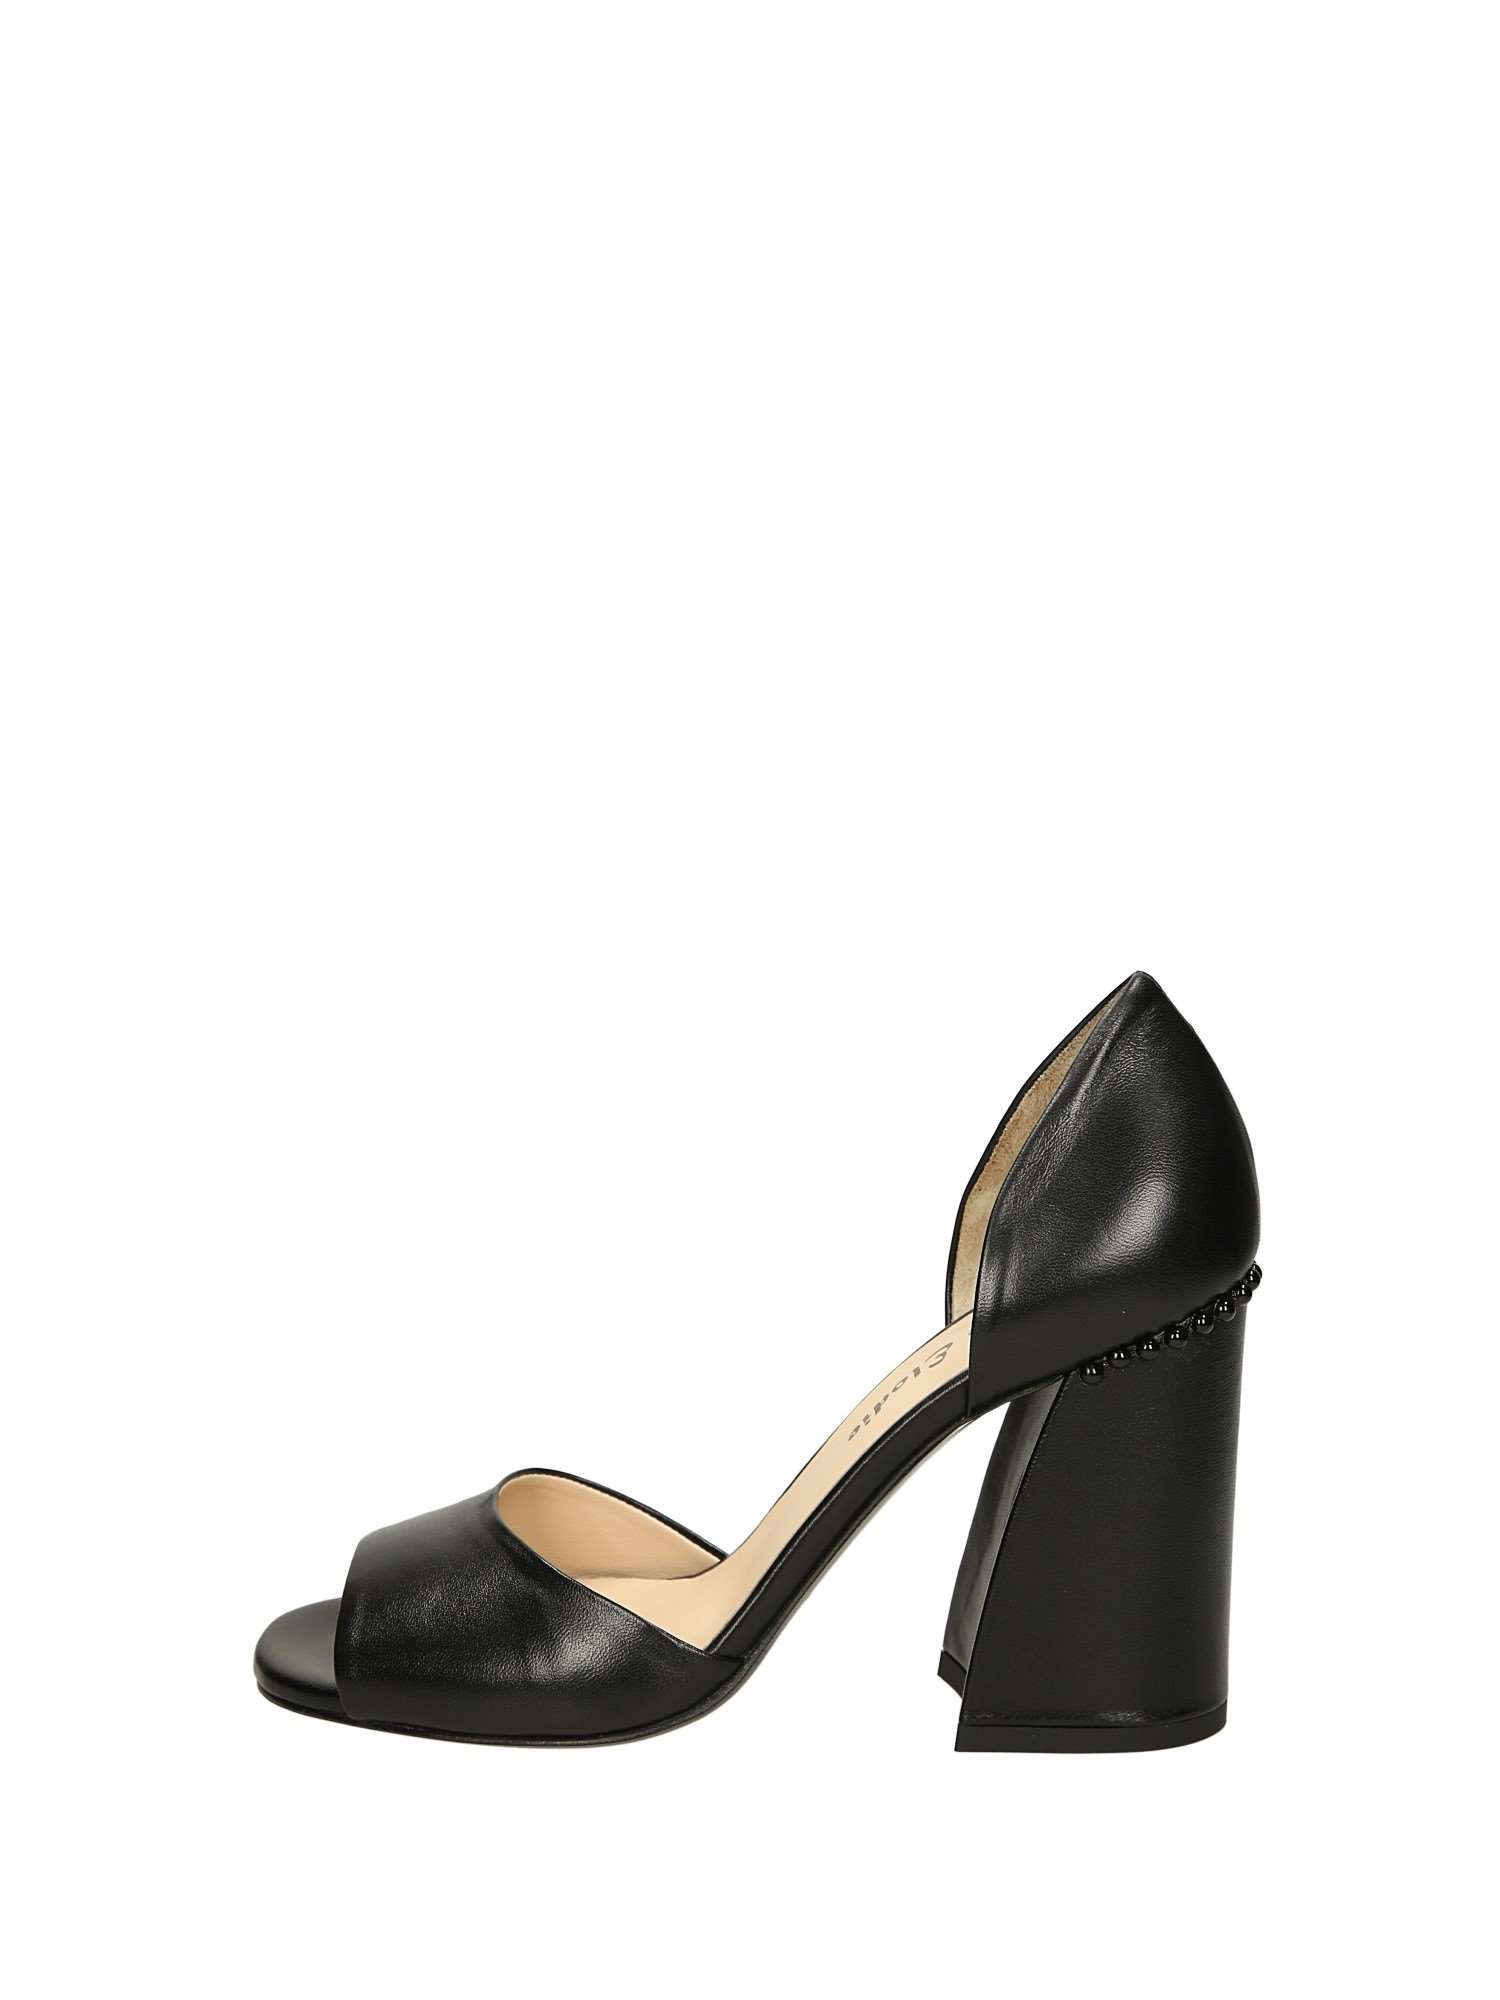 TWIN Set Plateau Pumps Nero Donna Tg. de 41 pumps plateauPumps PLATFORM PUMPS